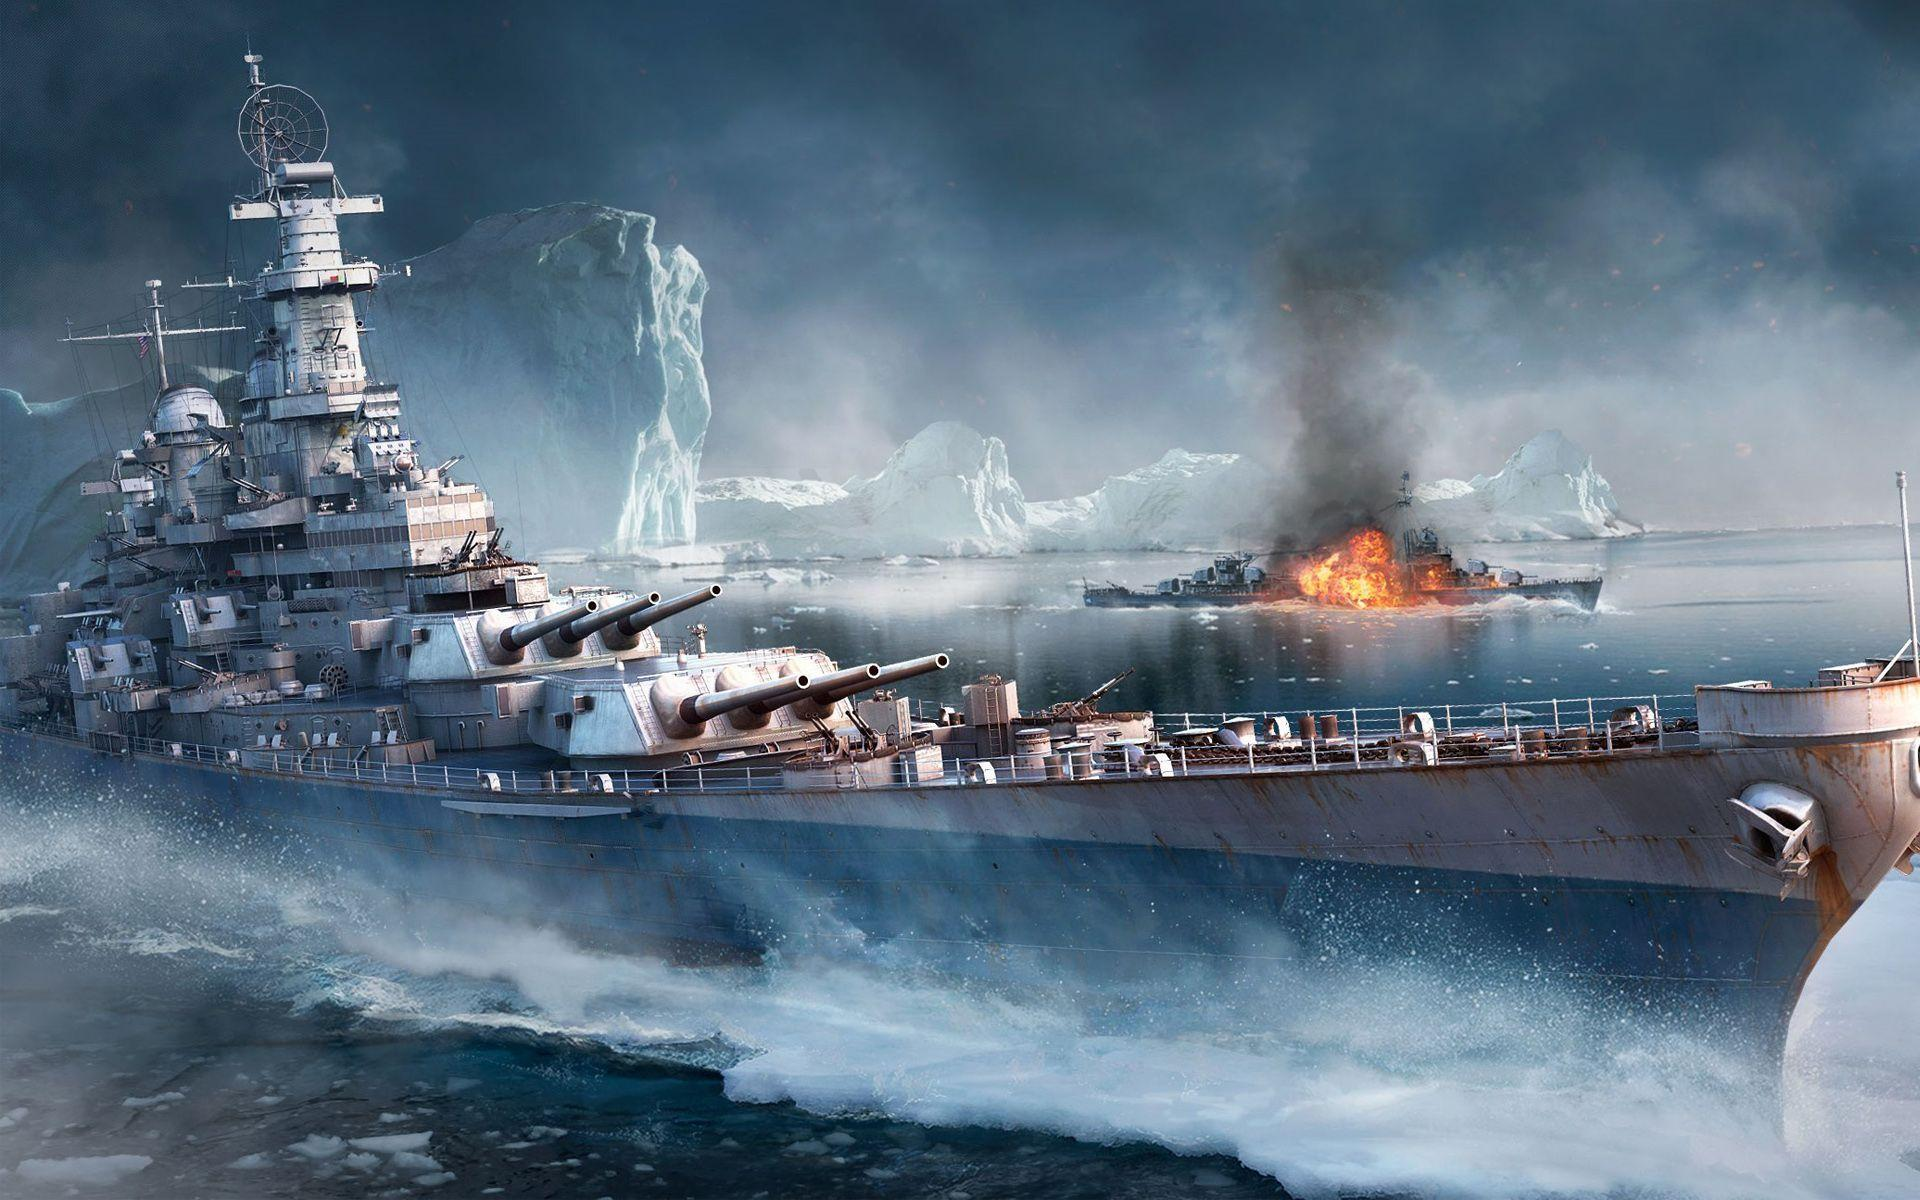 壁紙 World Of Warship 船 Wargaming Net Wows Bismarck ゲーム